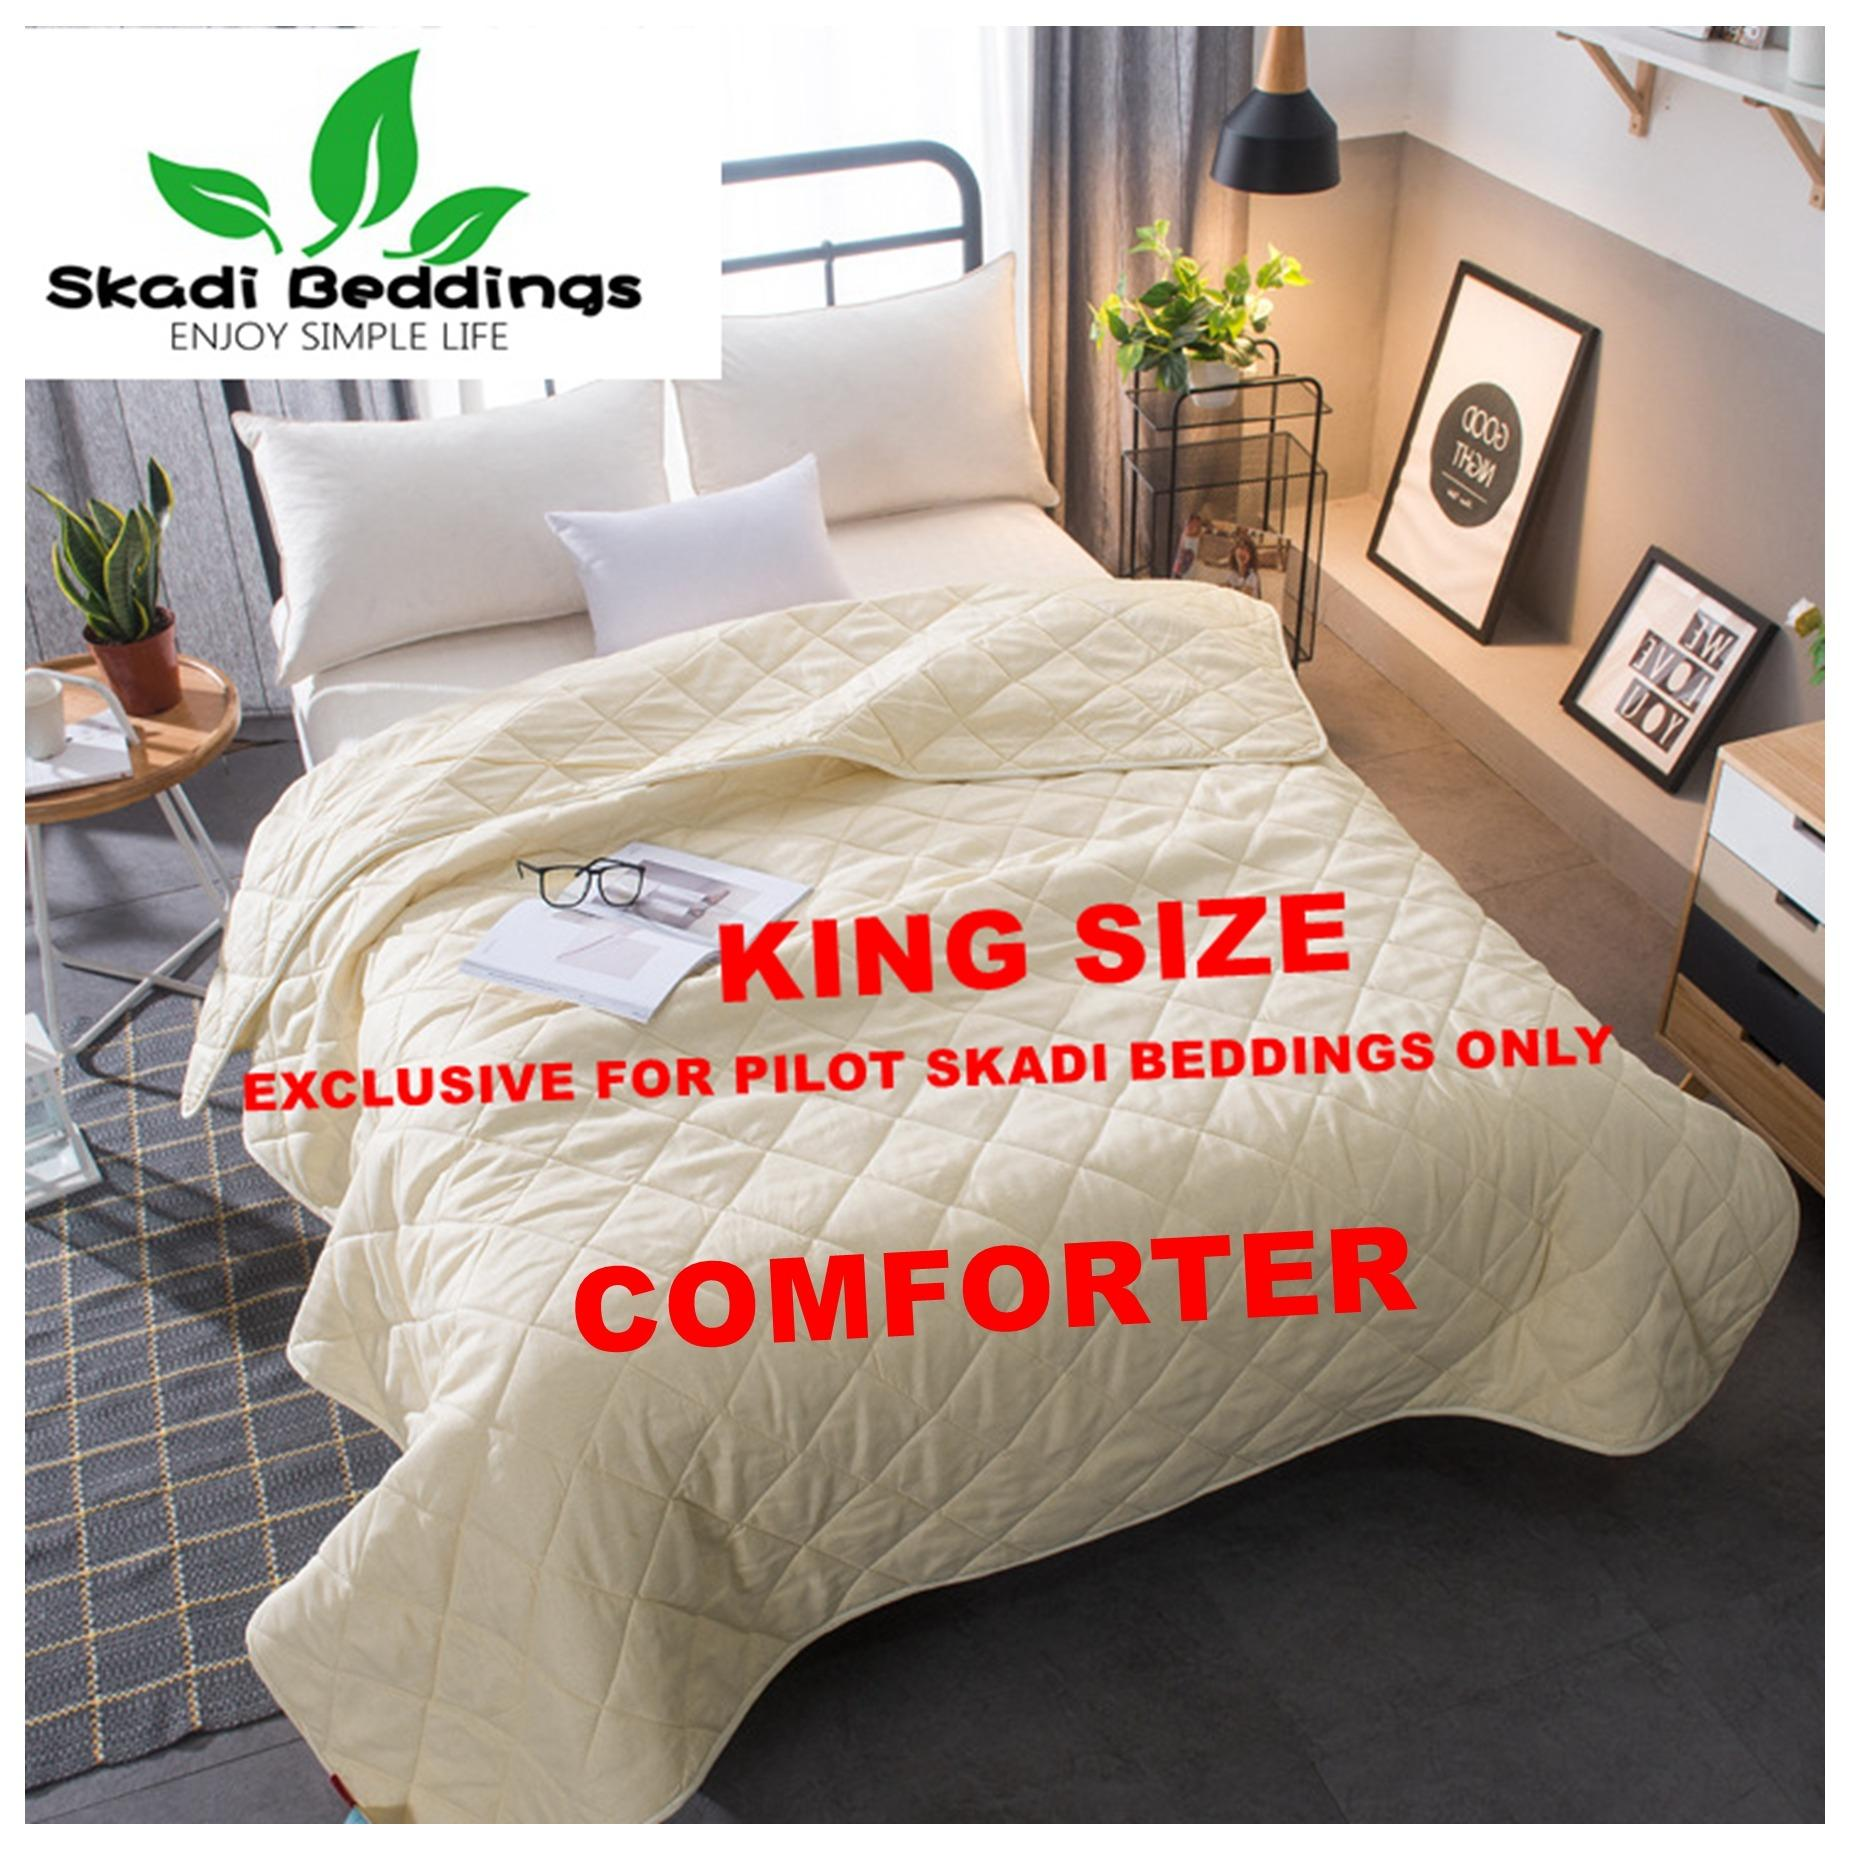 Www asian dating space comforter